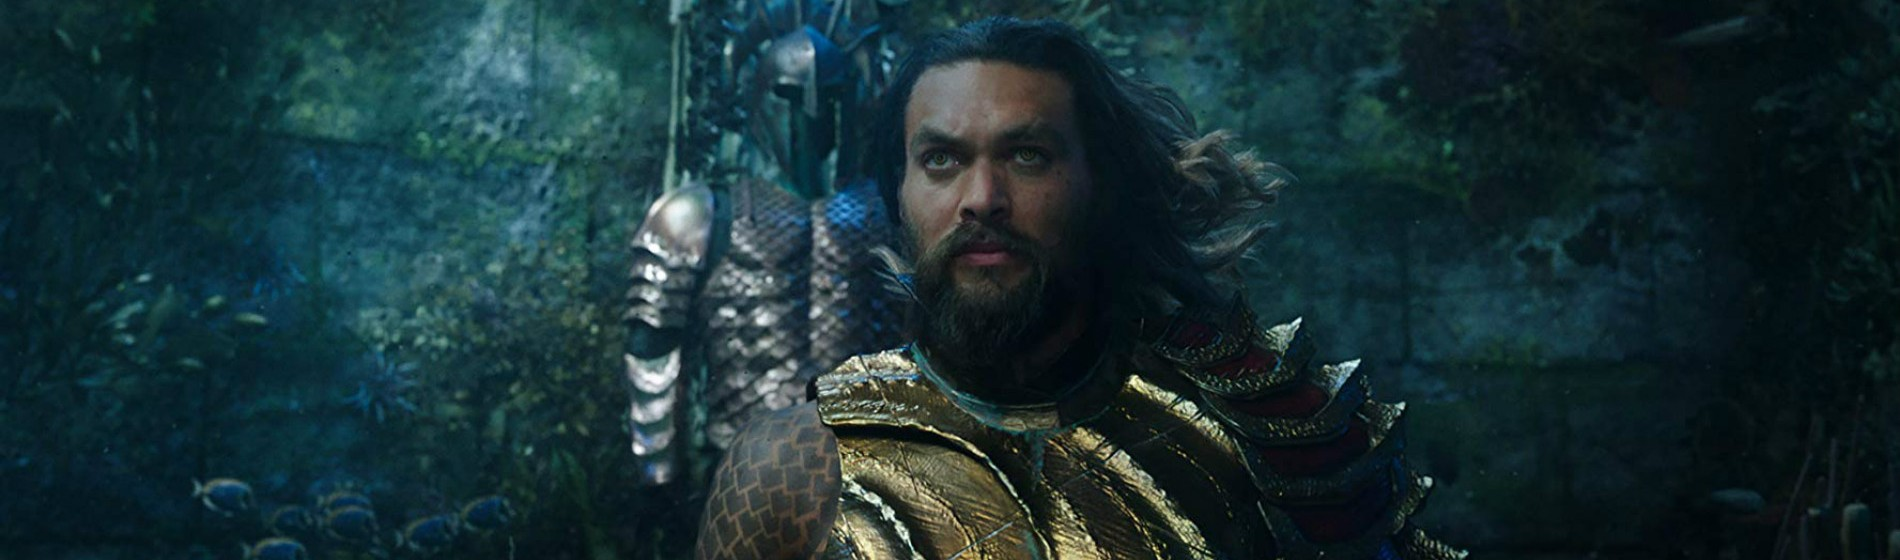 Aquaman Wearing Armour